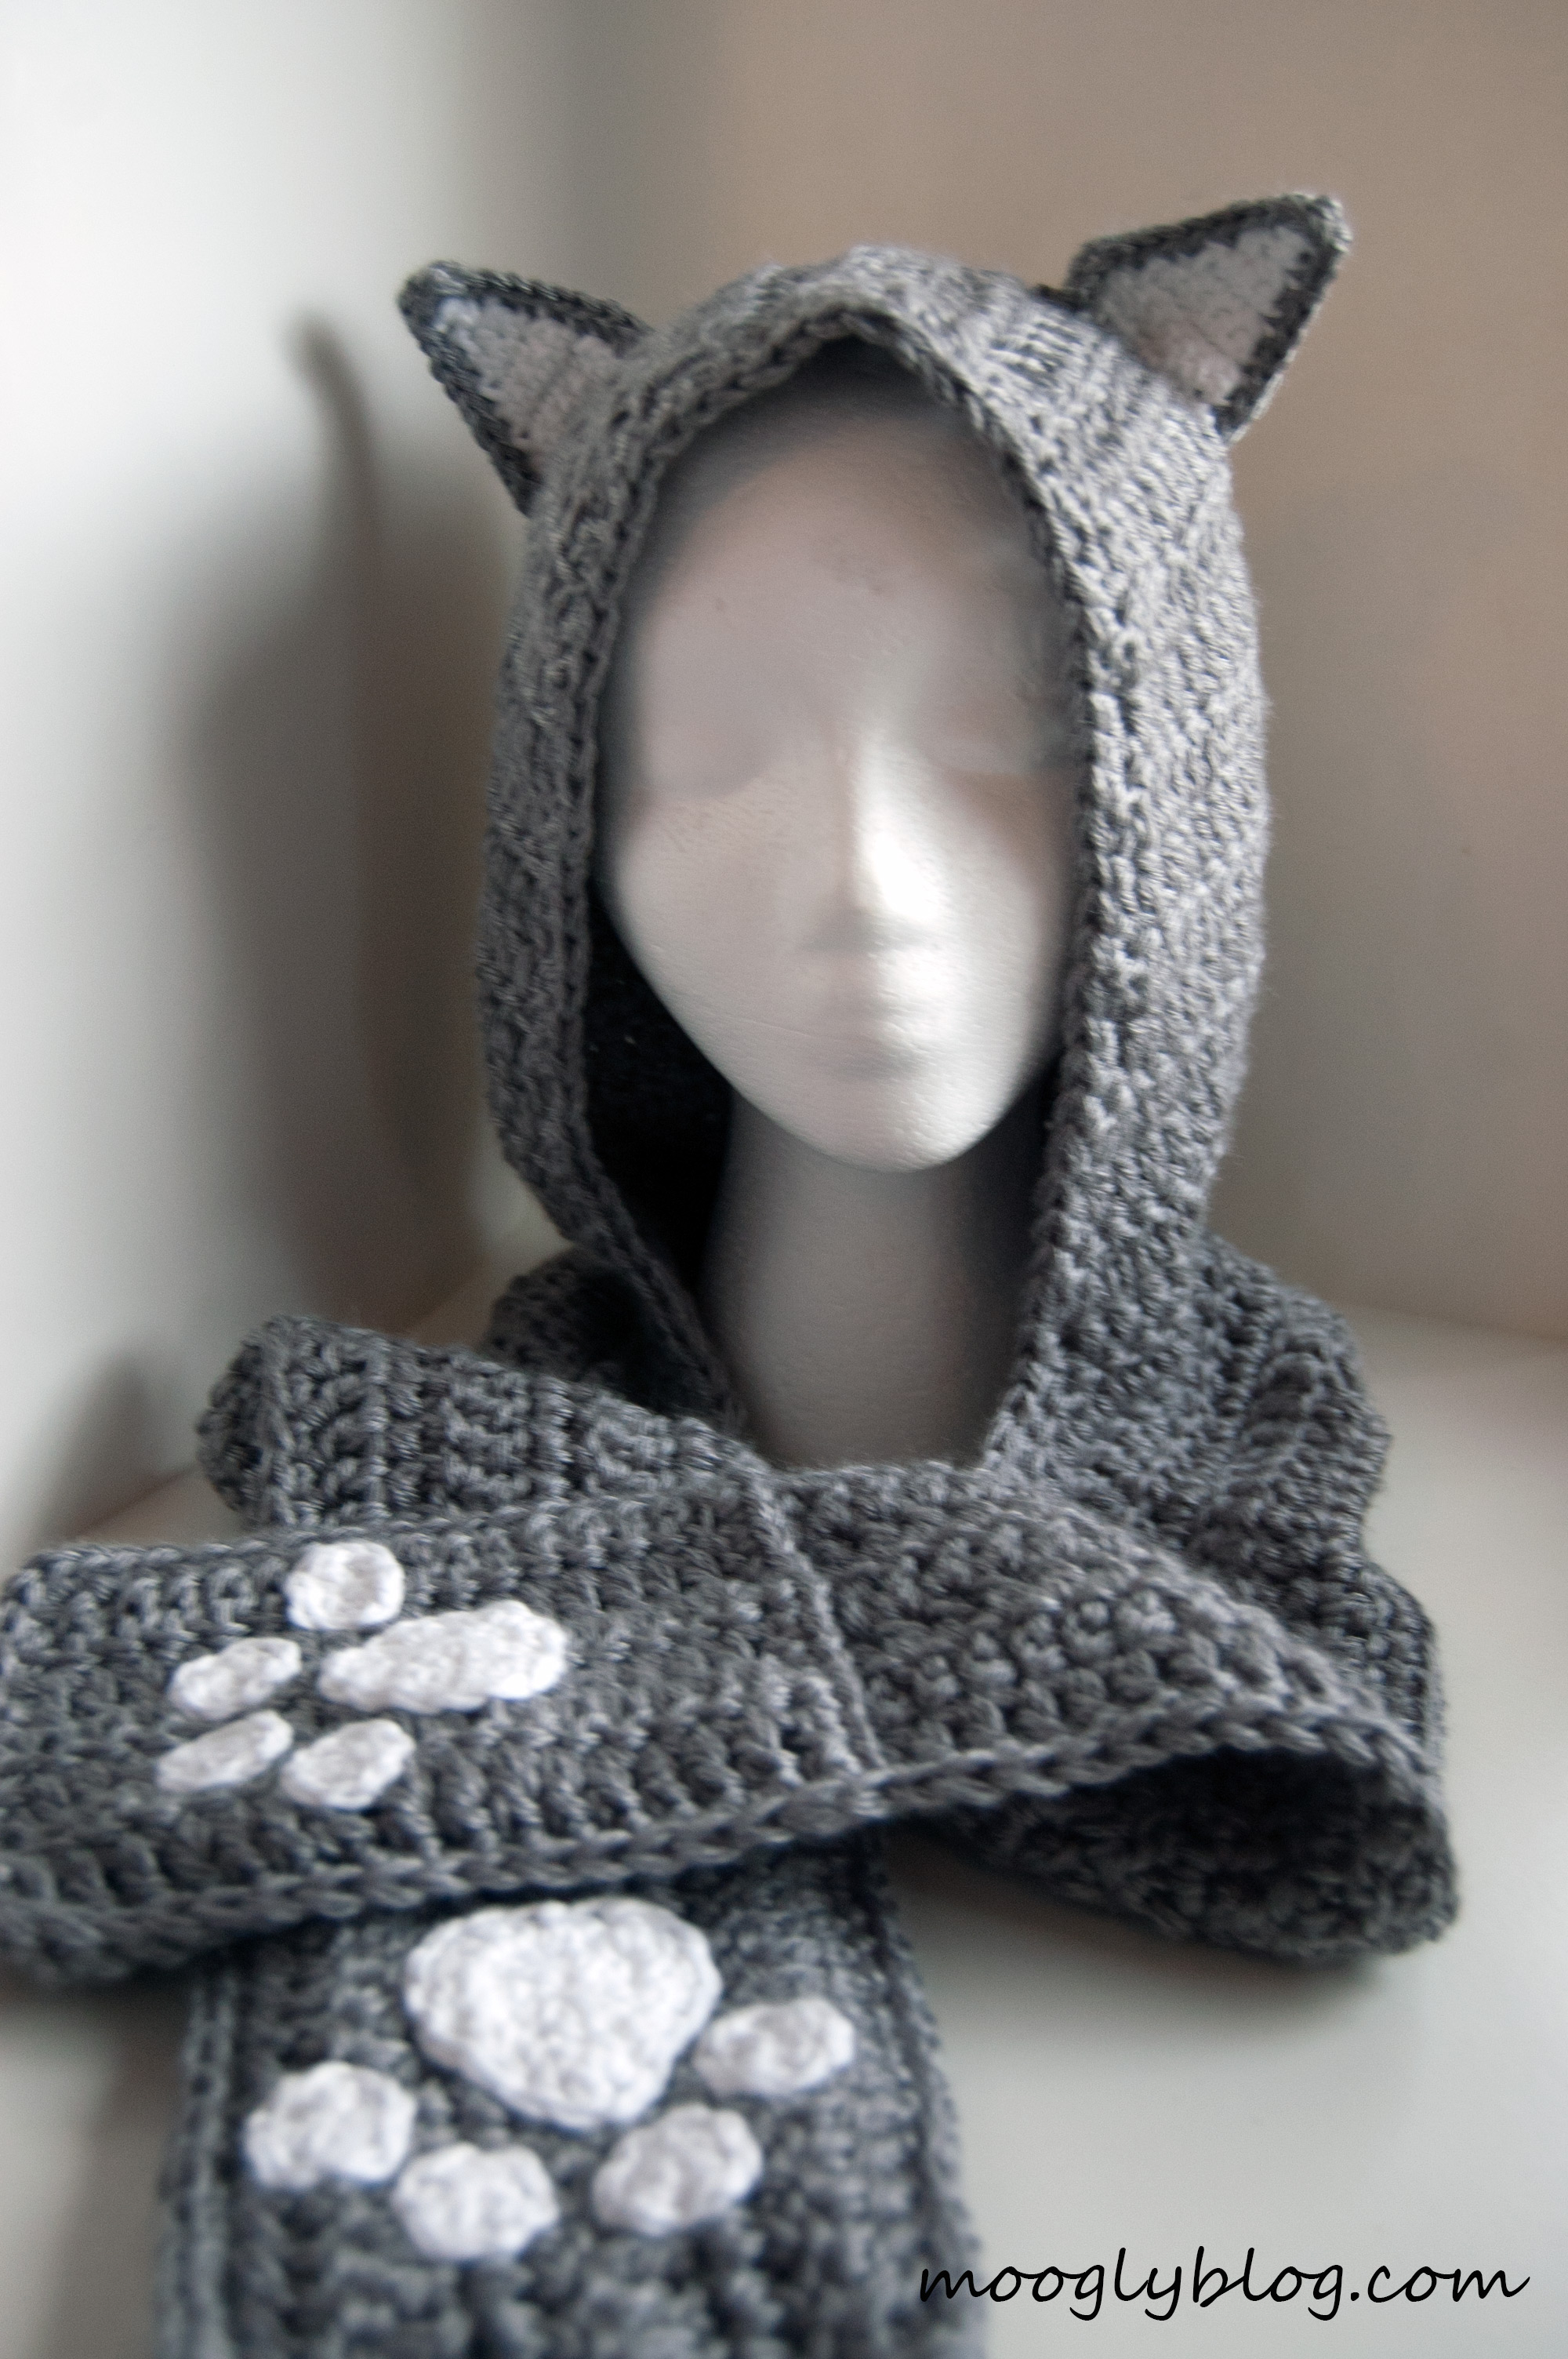 10 Crochet Hooded Scarves And Cowls Patterns